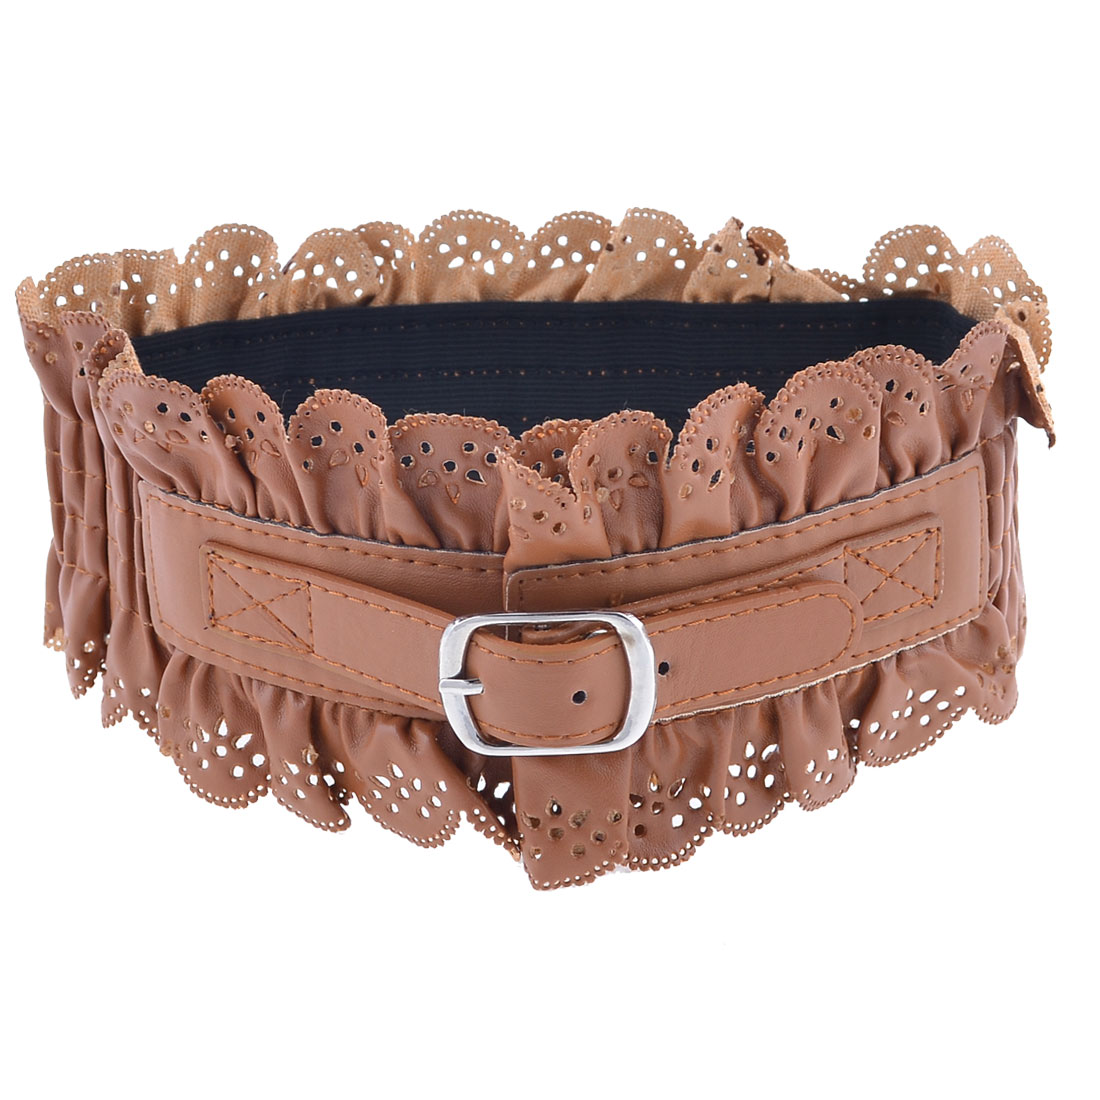 Pleated Faux Leather Single Pin Buckle Elastic Cinch Belt Brown for Women